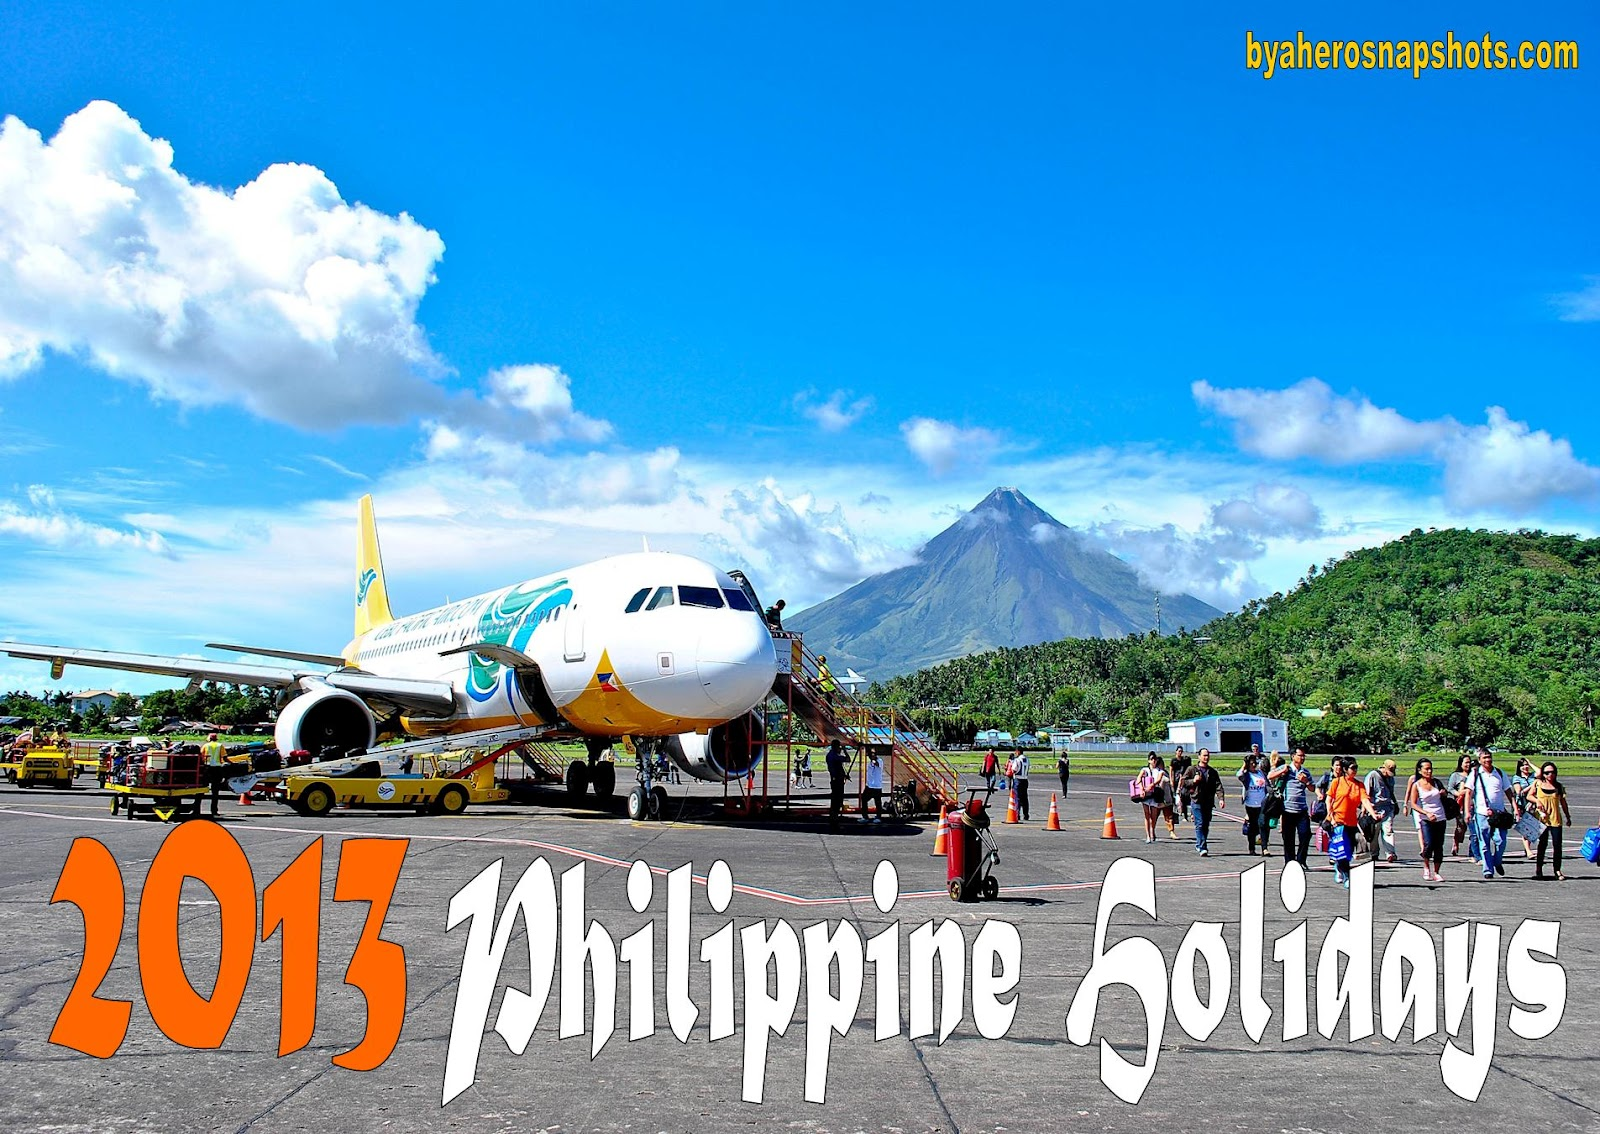 is the list of holidays and long weekends in the philippines for 2013